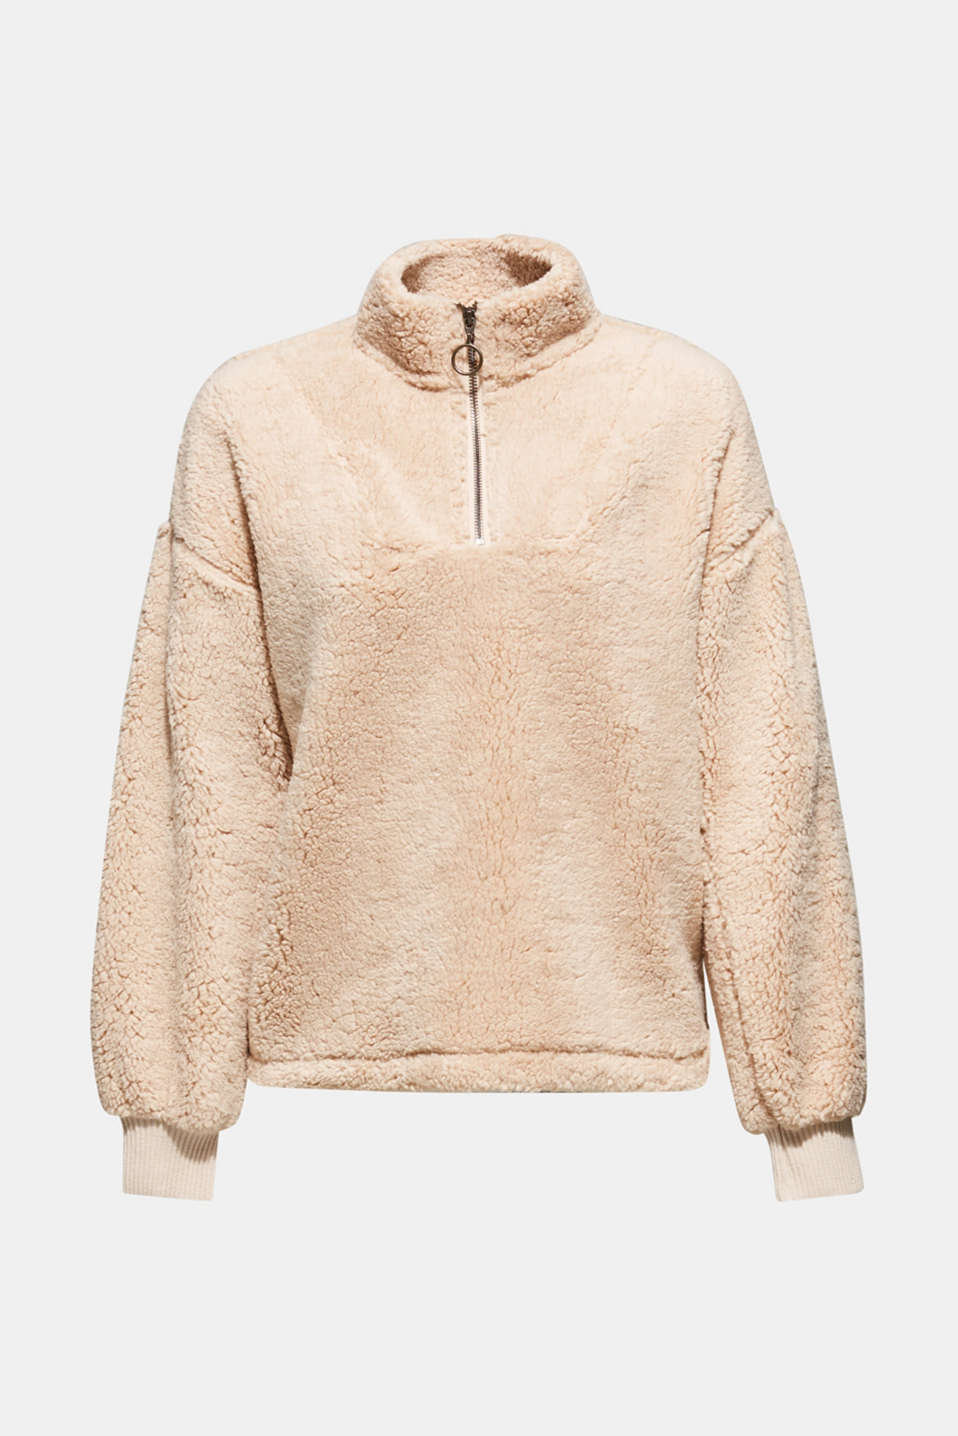 Teddy fur jumper with a zip, BEIGE, detail image number 6